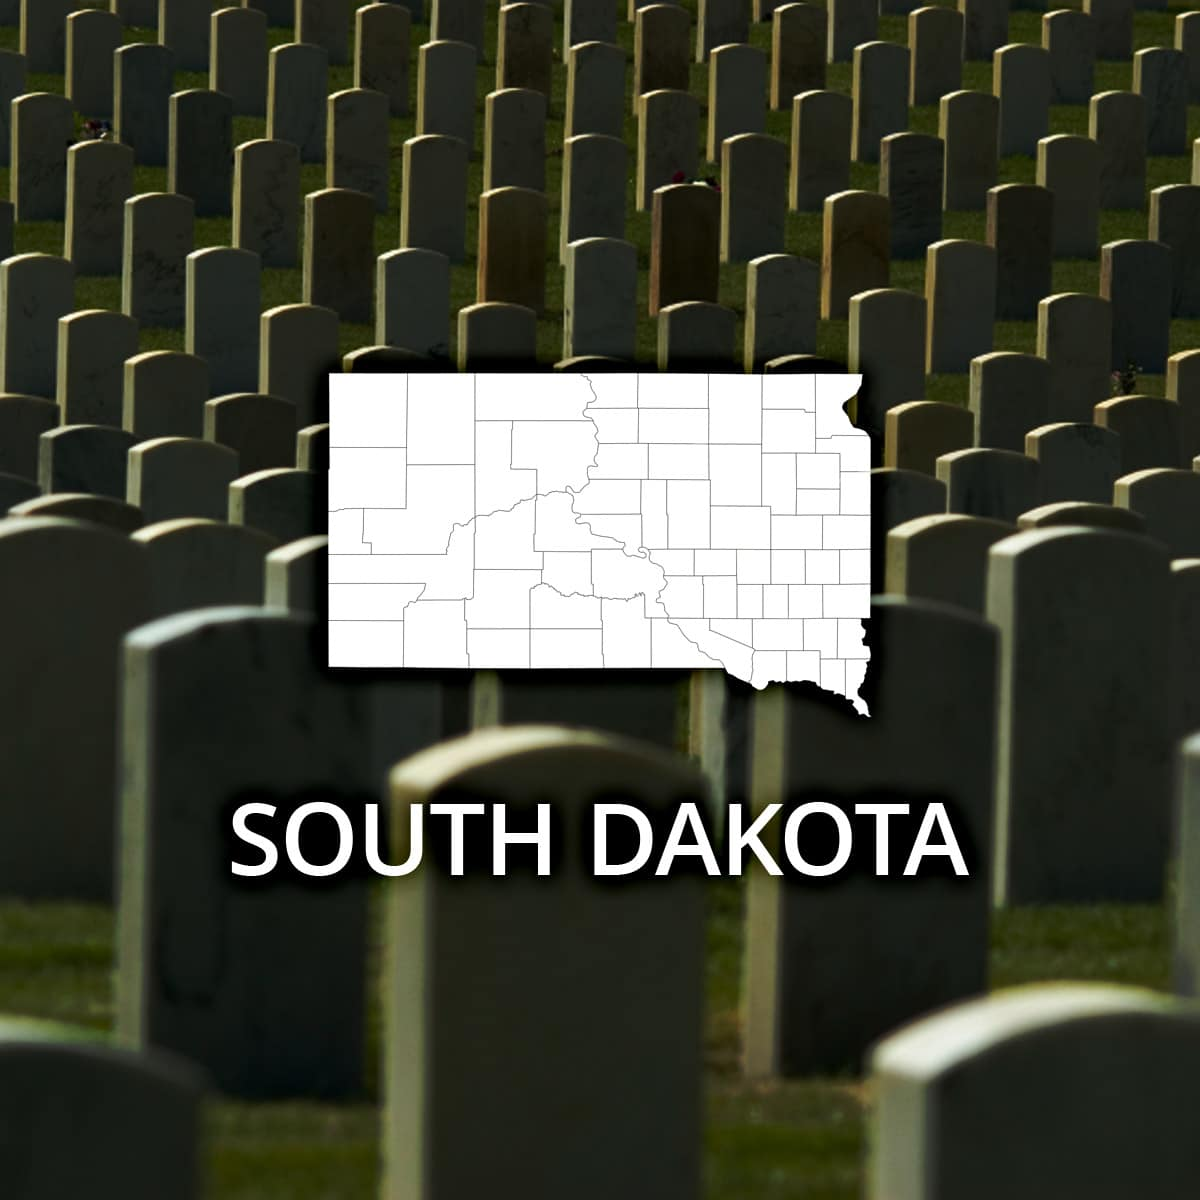 Where to Obtain a South Dakota Death Certificate